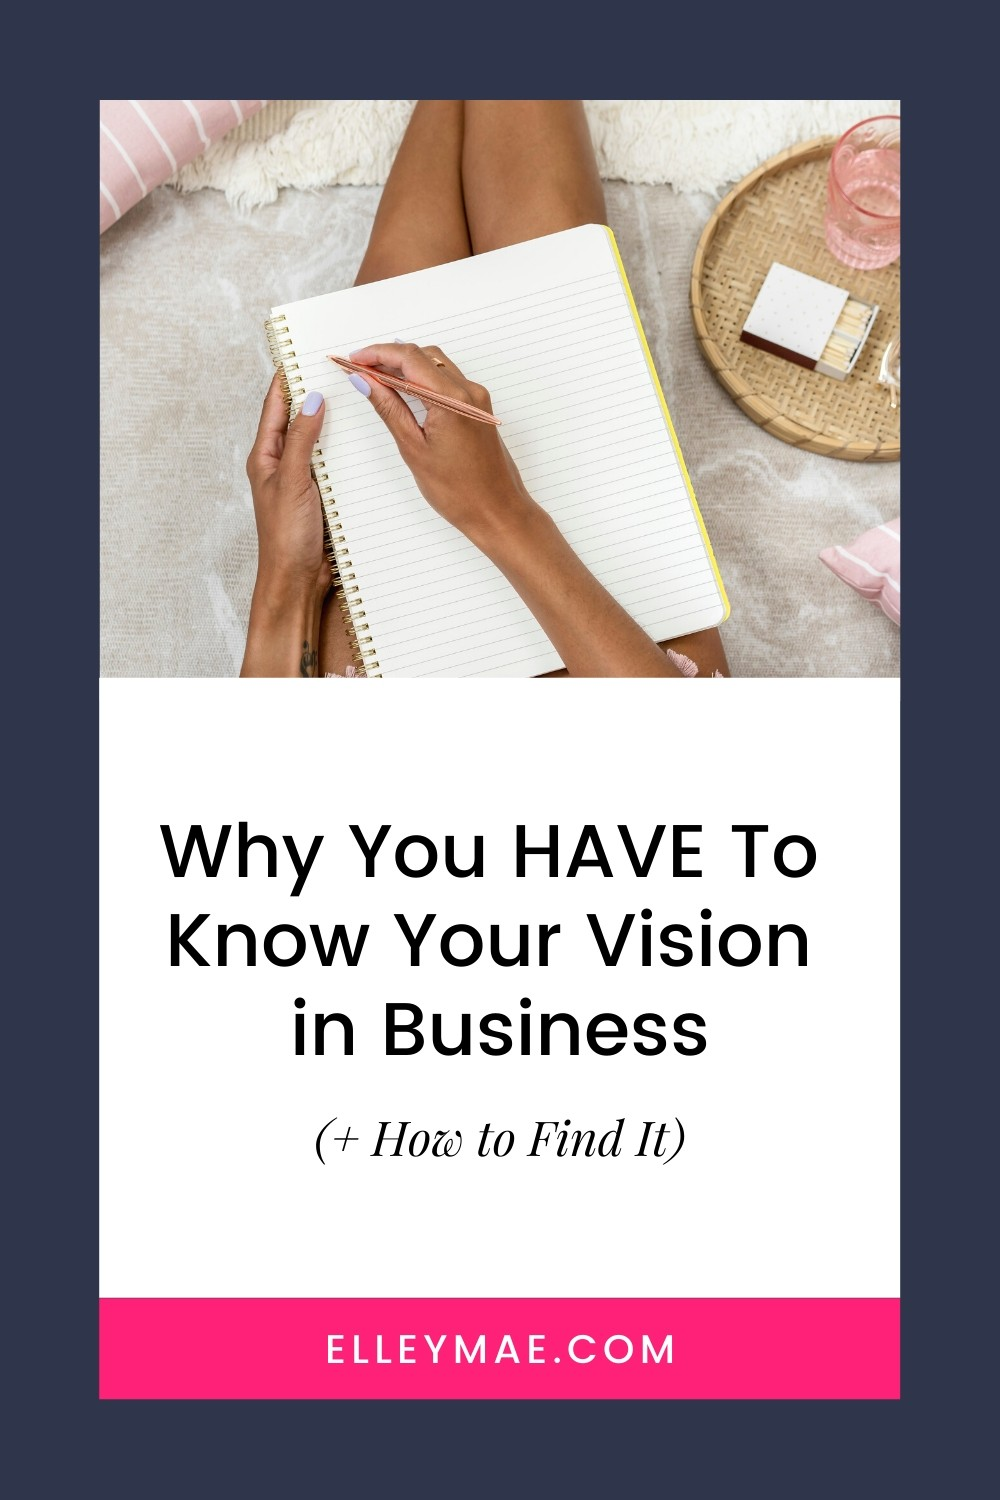 Why You HAVE To Know Your Vision in Business (+ How to Find It)